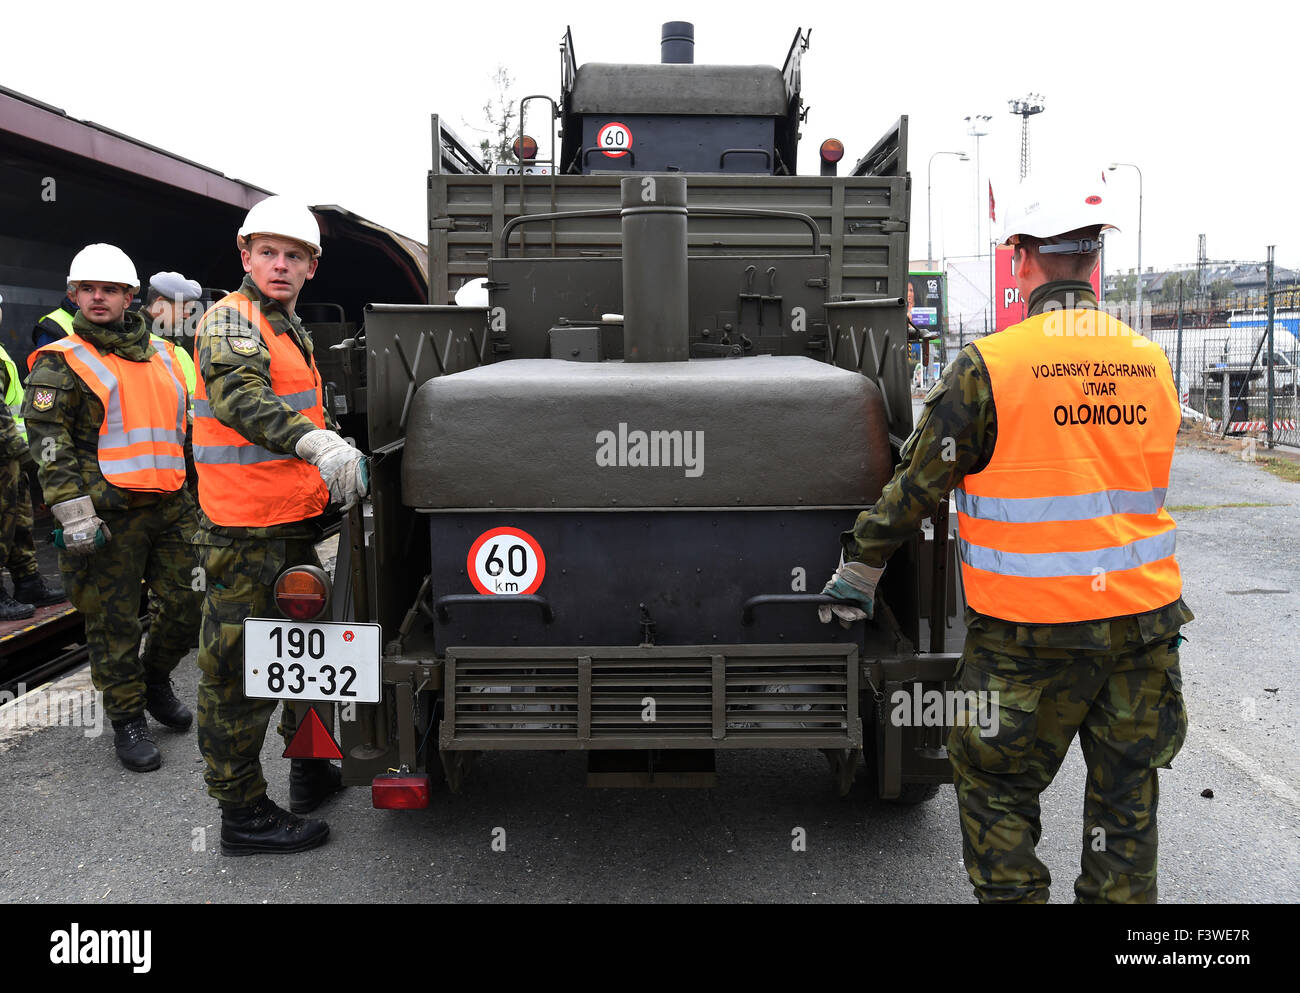 Olomouc, Czech Republic. 13th Oct, 2015. Czech engineering troops are setting out for Hungary to help protect its - Stock Image